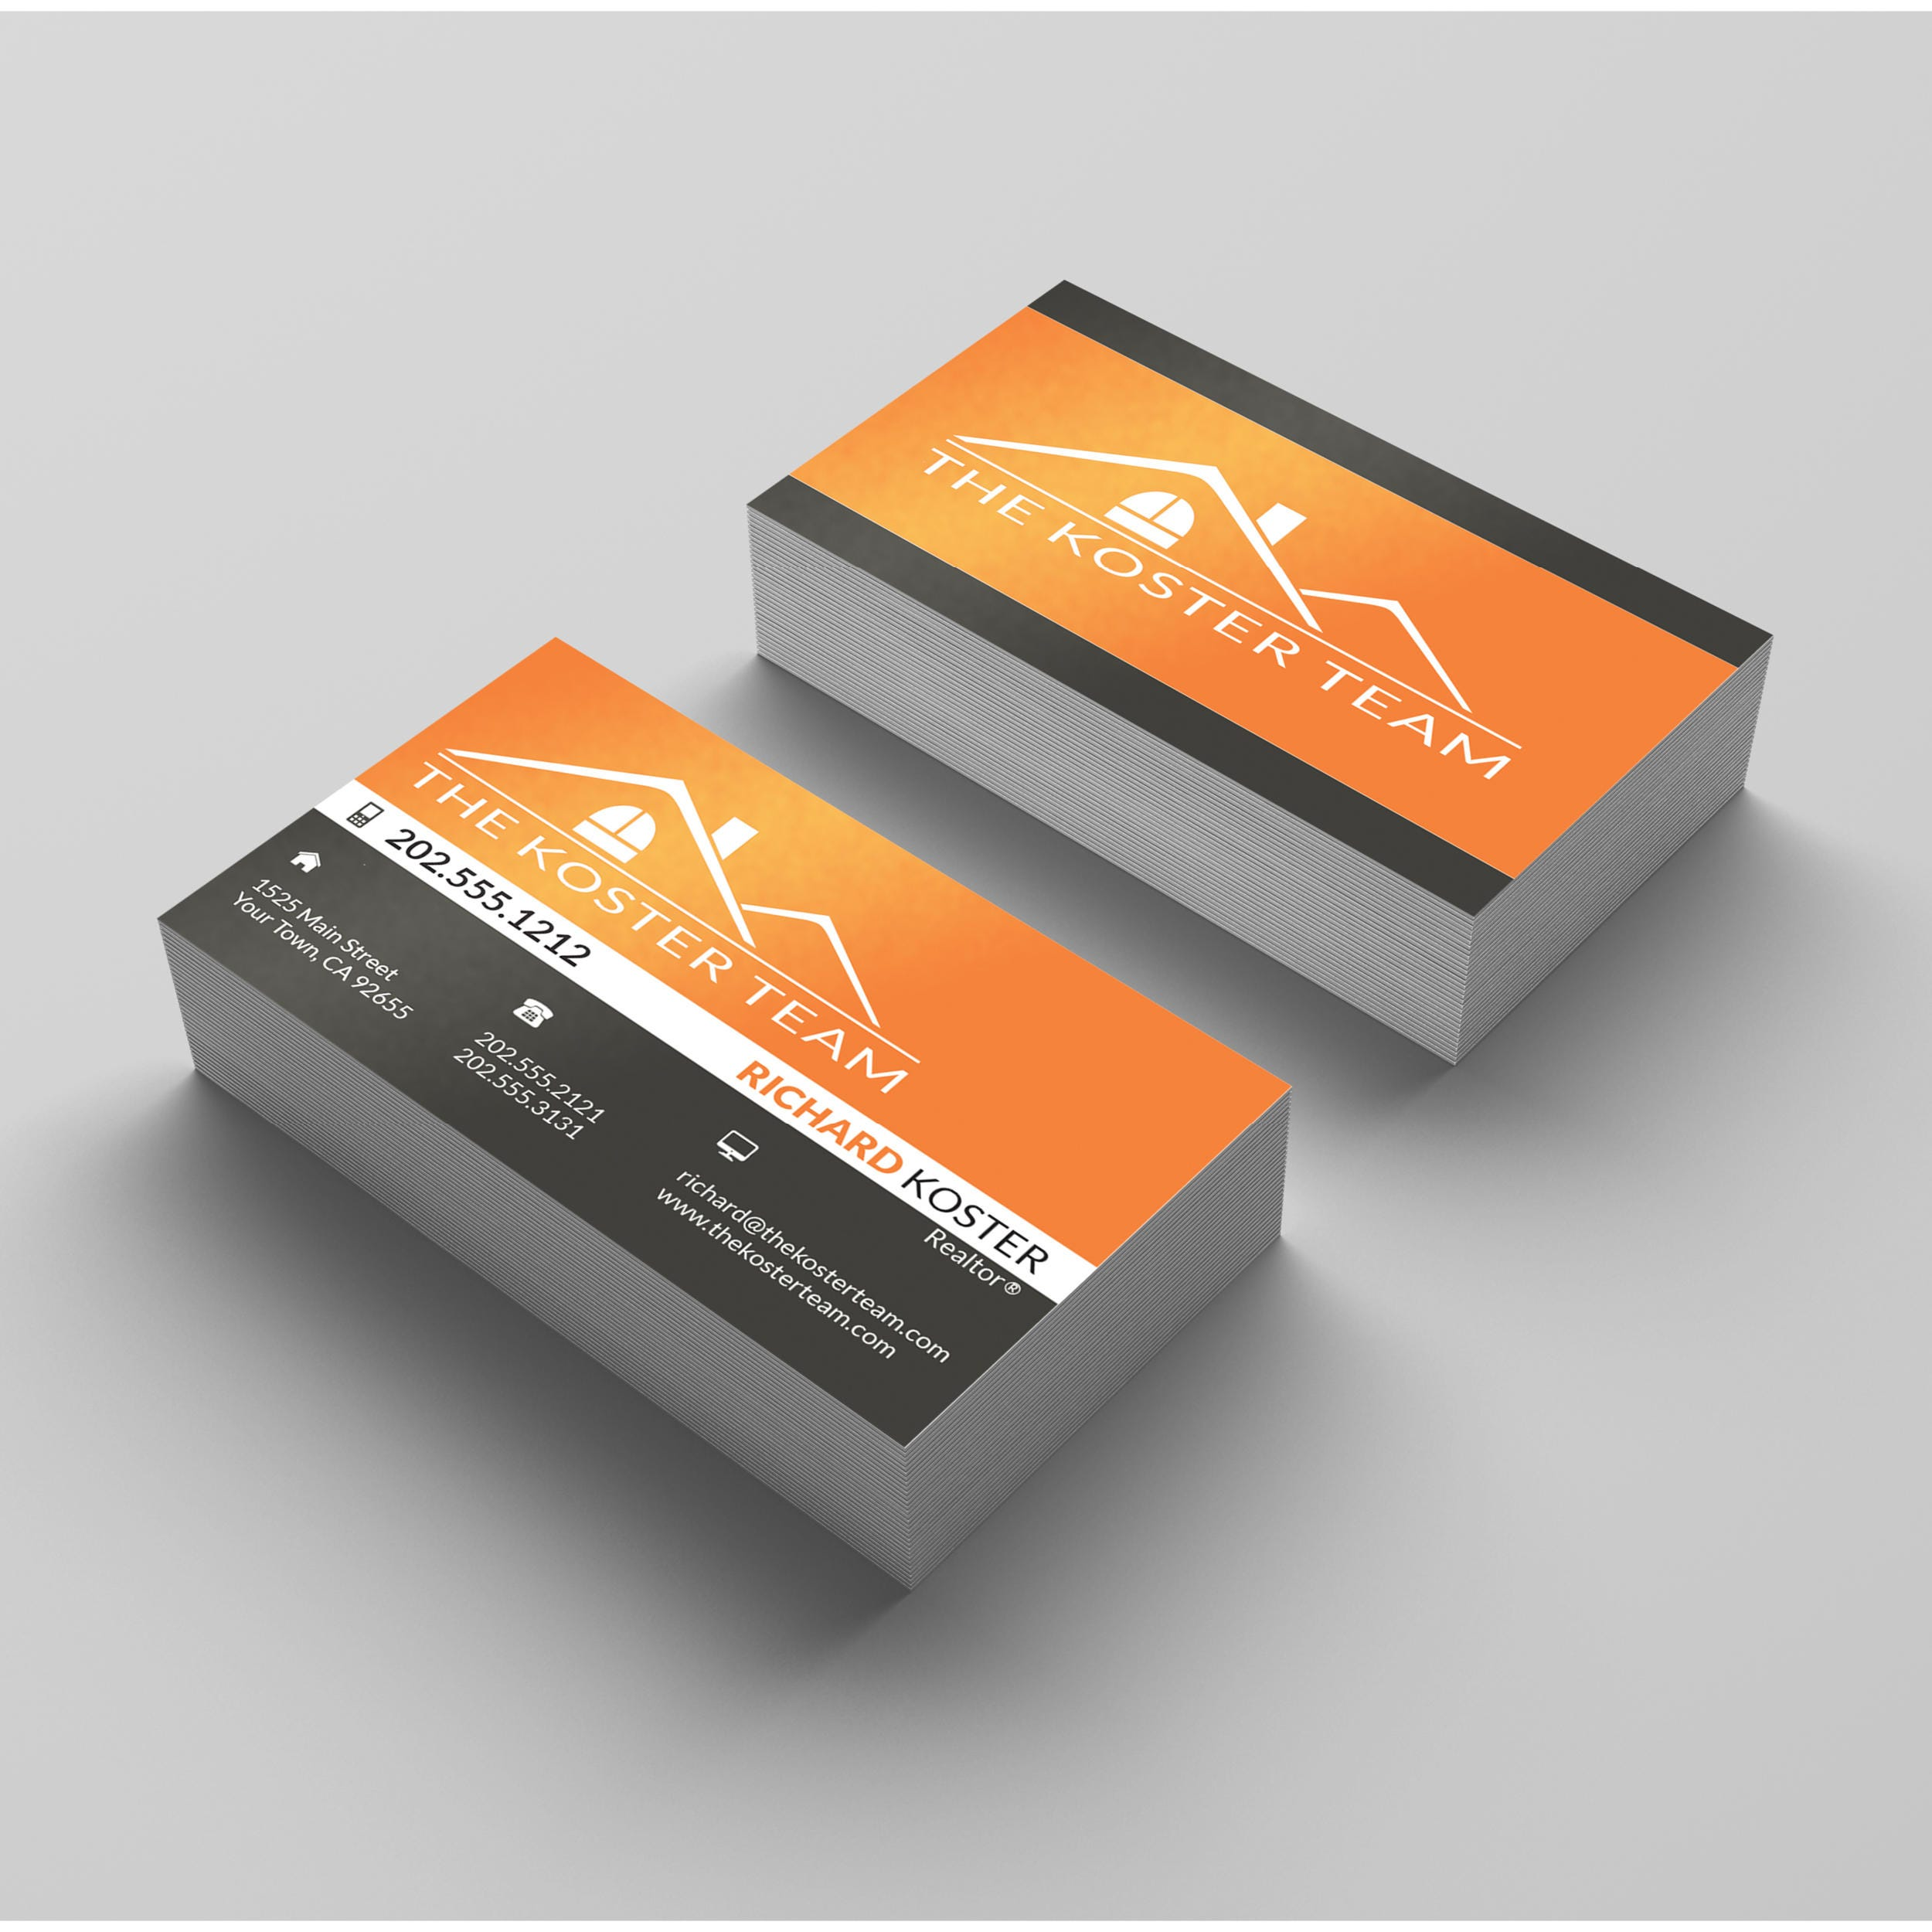 Printed cards real estate business card personalized real description printed real estate business cards magicingreecefo Gallery